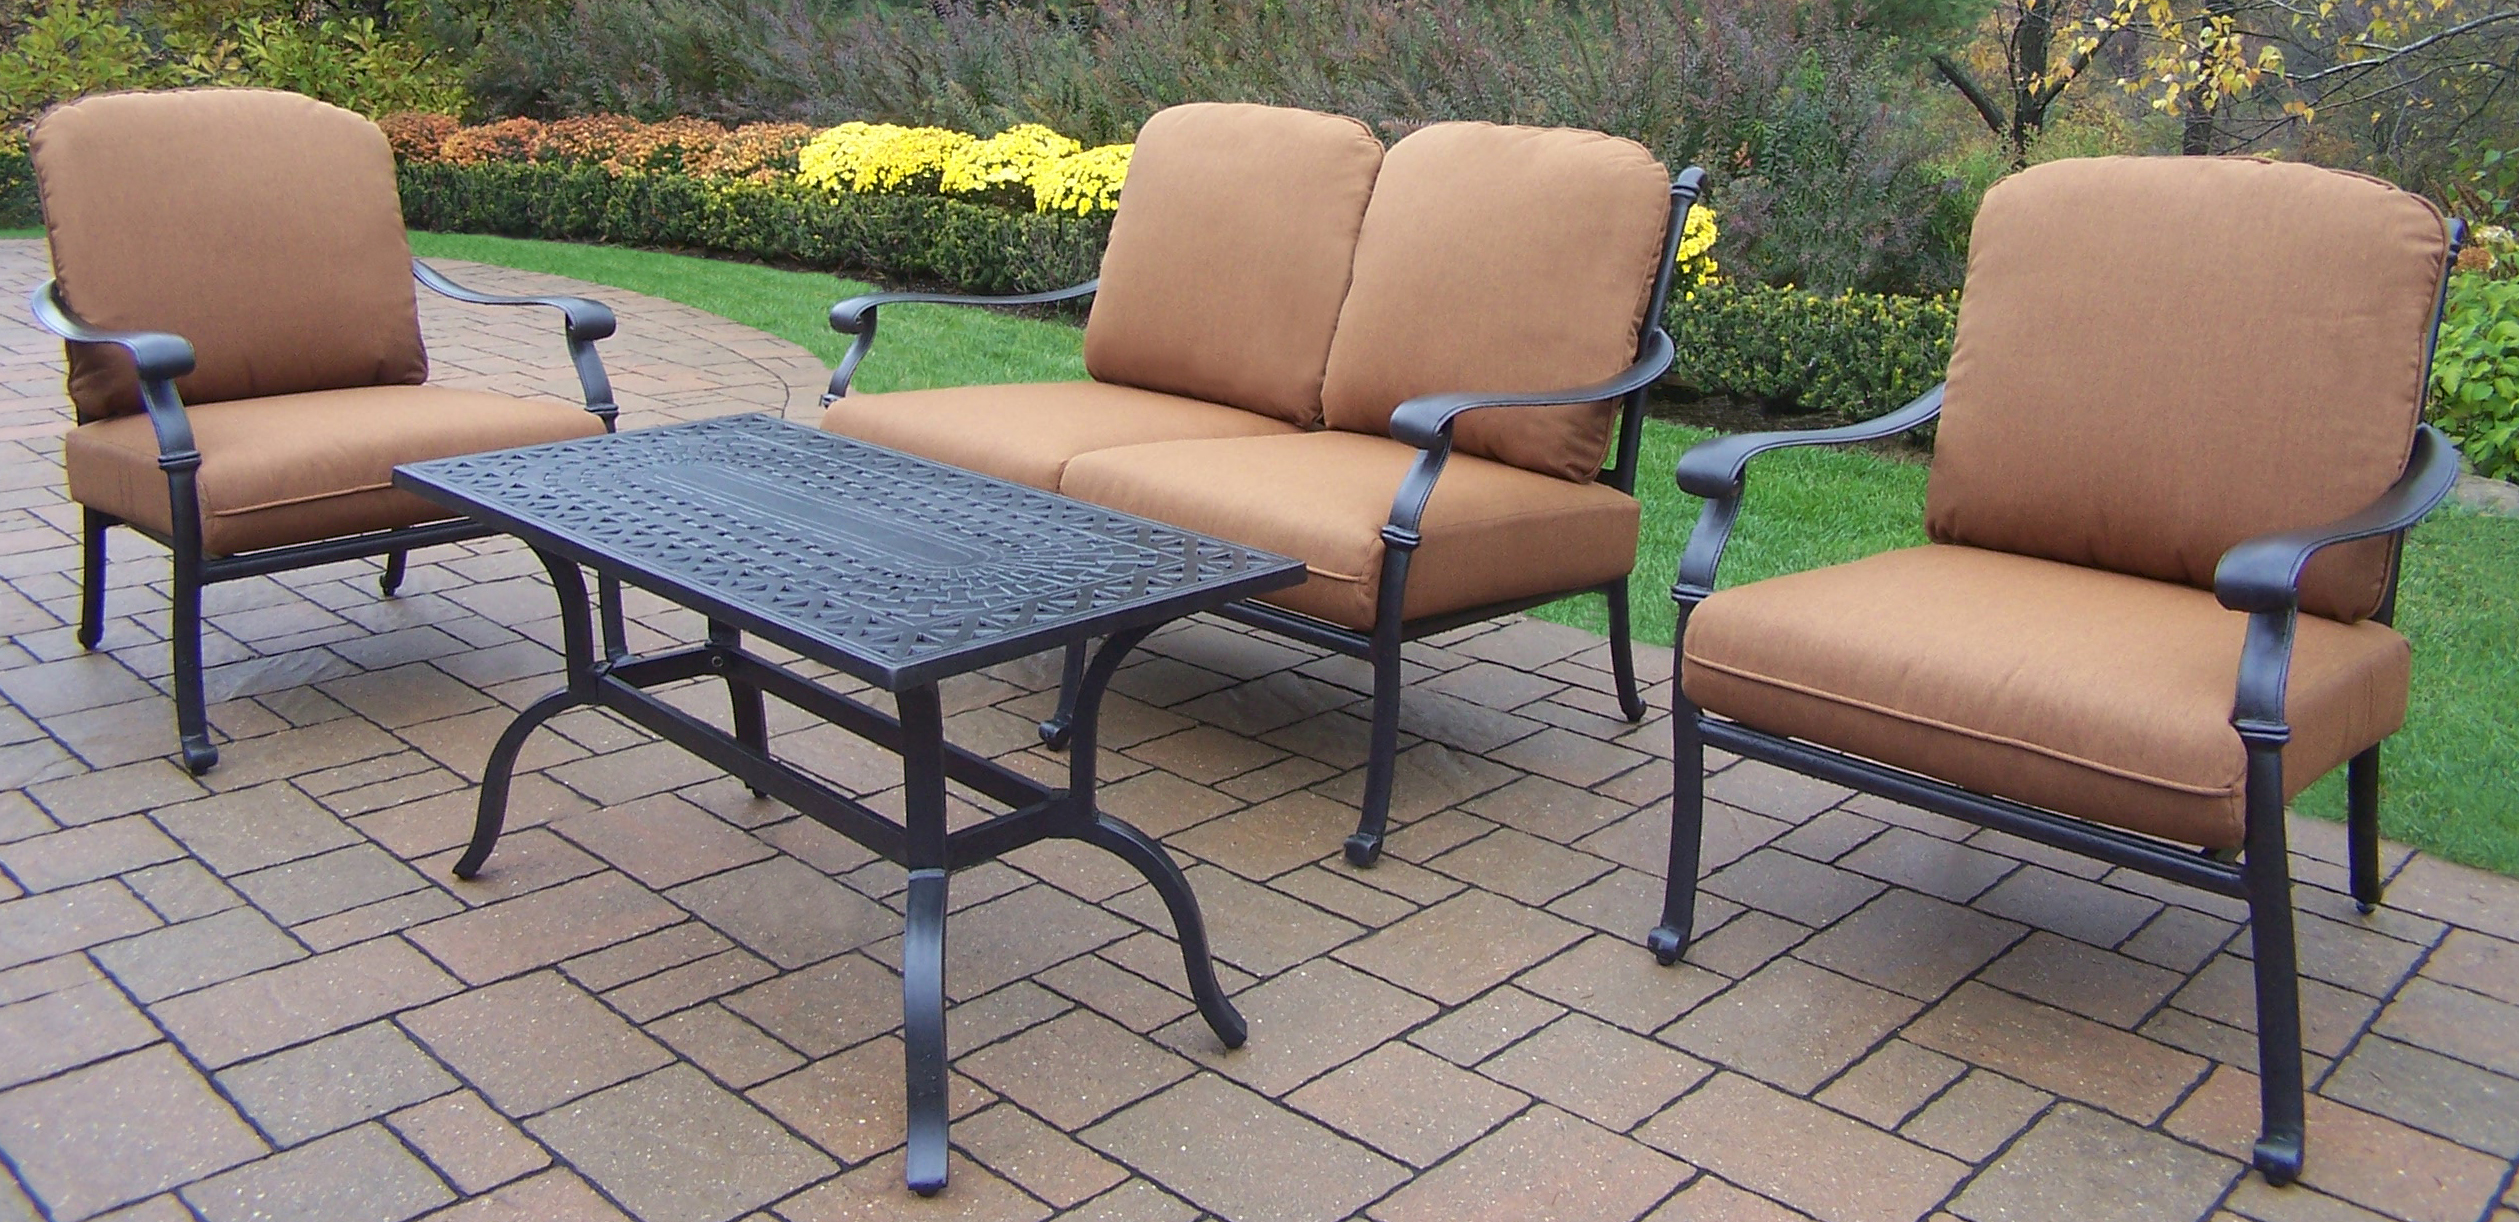 Sunbrella Outdoor Patio Furniture